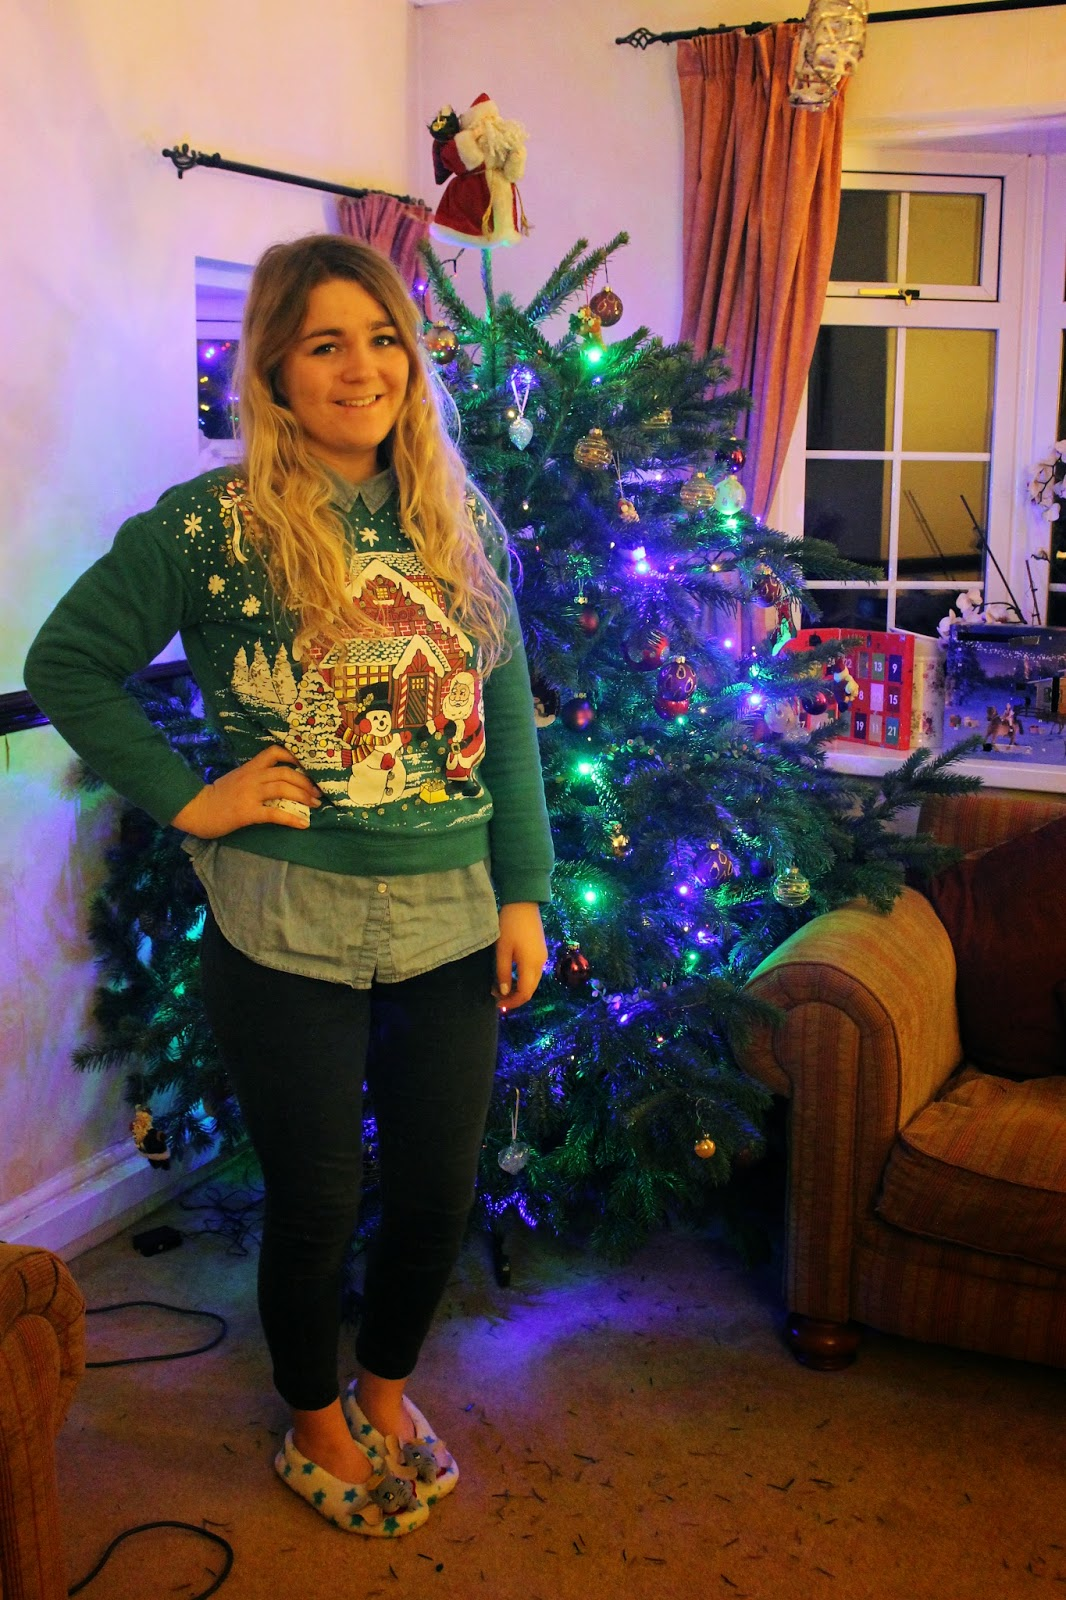 Christmas jumper and Christmas tree